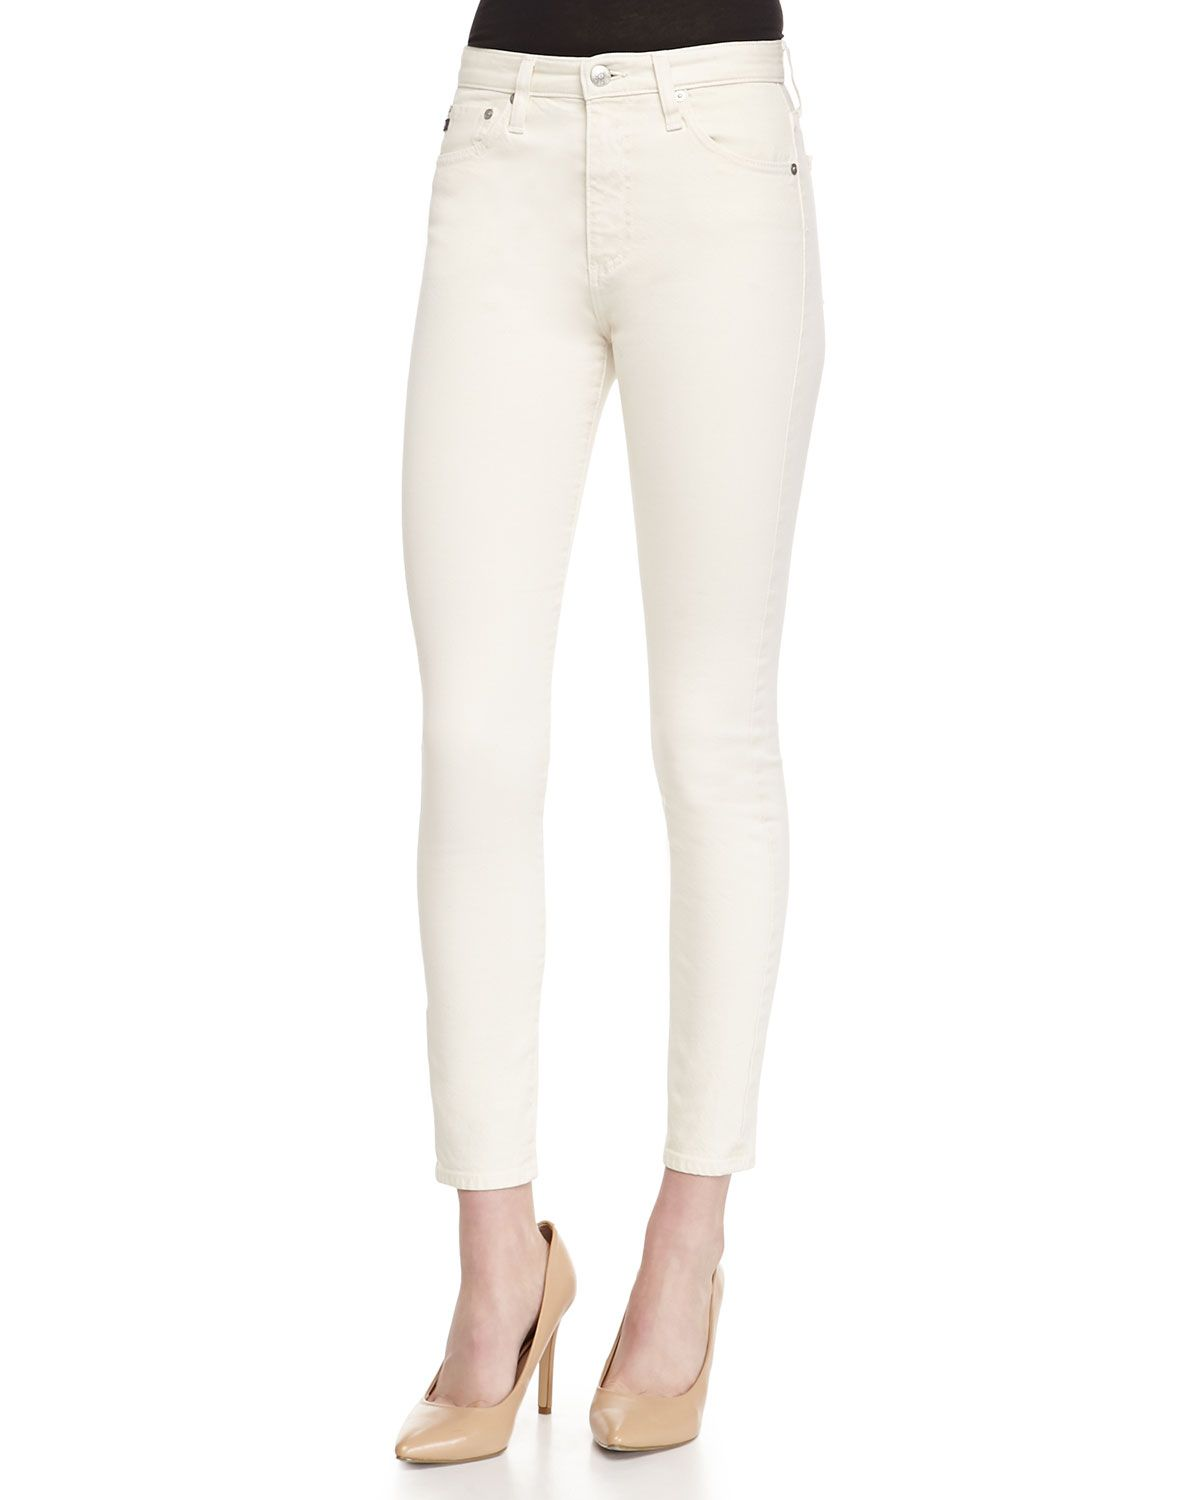 6a03d66fef The Brianna High-Waist Skinny Jeans, Women's, Size: 25, Sulfur Natural -  Alexa Chung for AG